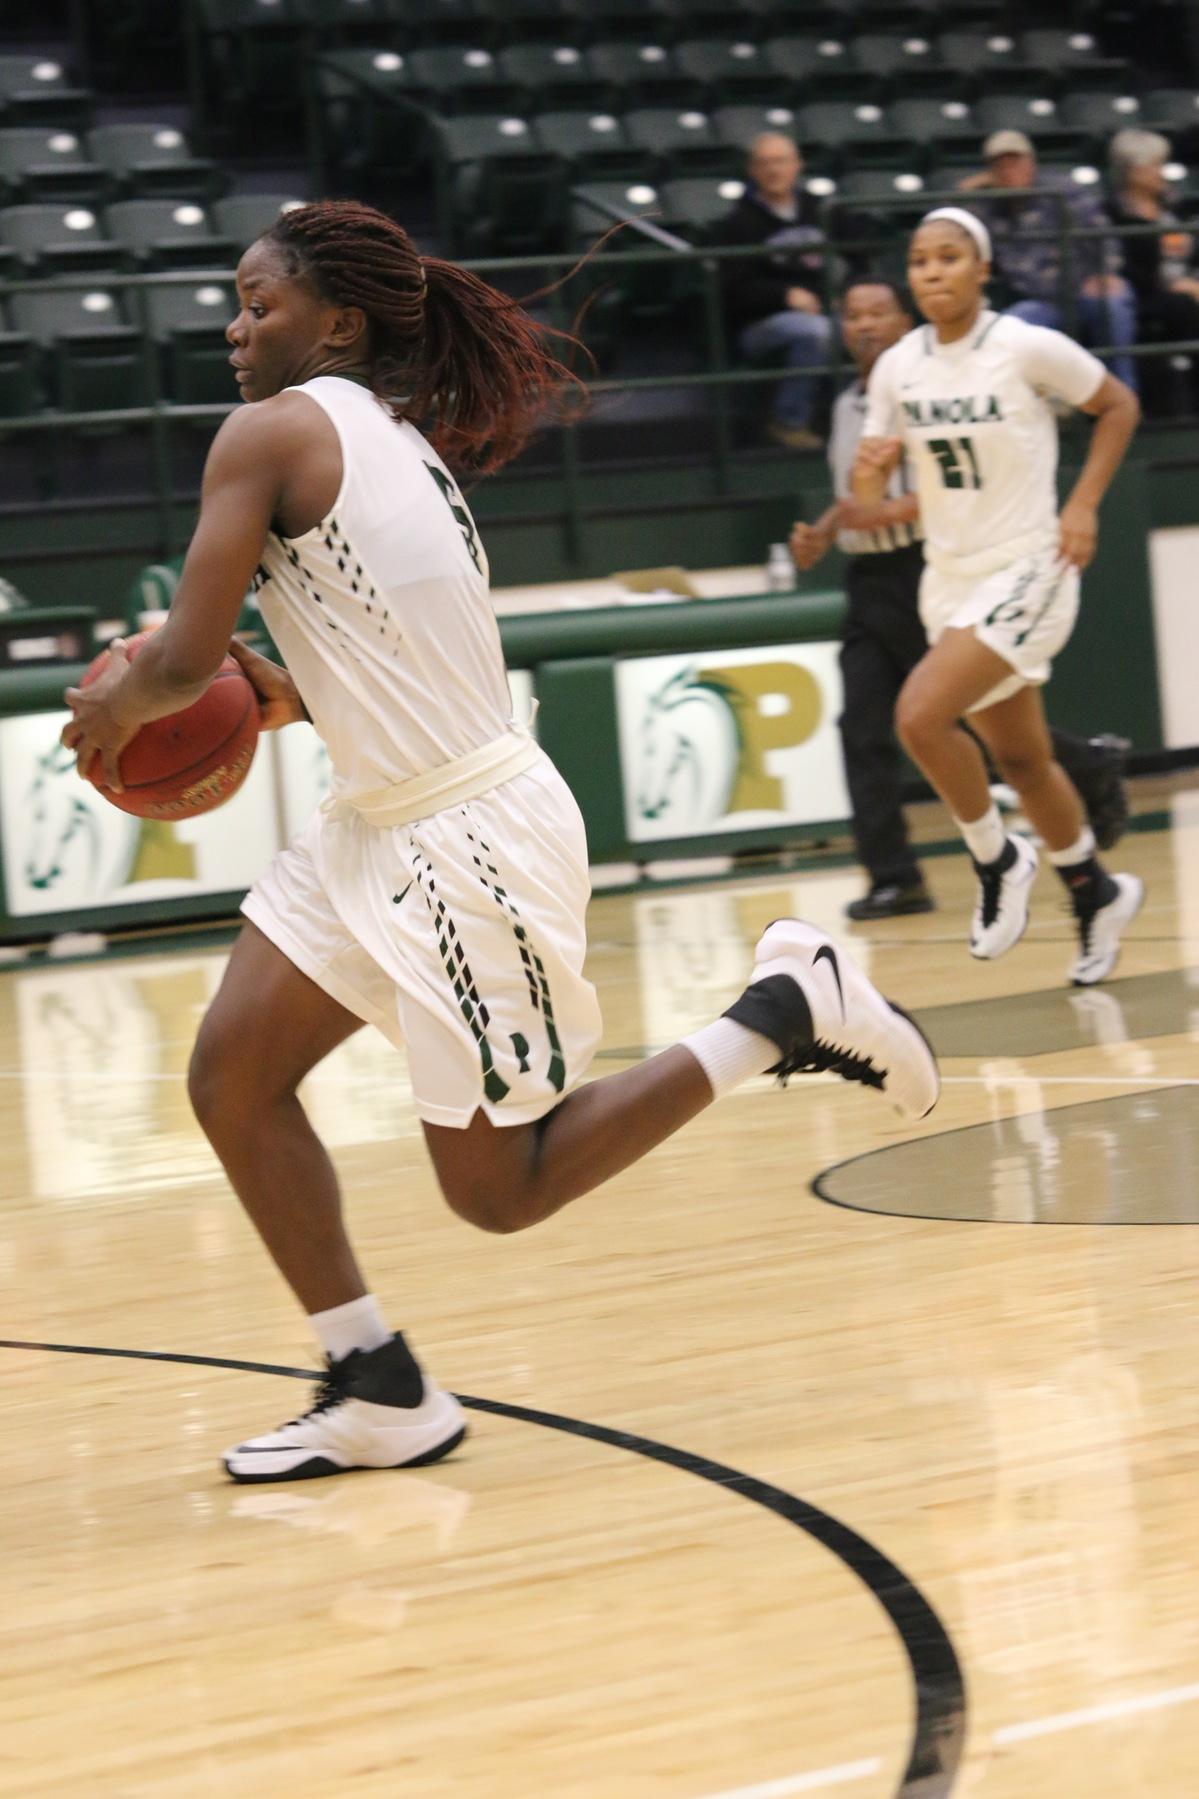 Freshman Patience Okpe goes for 16 and Sophomore Genesis Rivera (21) goes for 16 as well. Photo courtesy of Theresa Beasley.